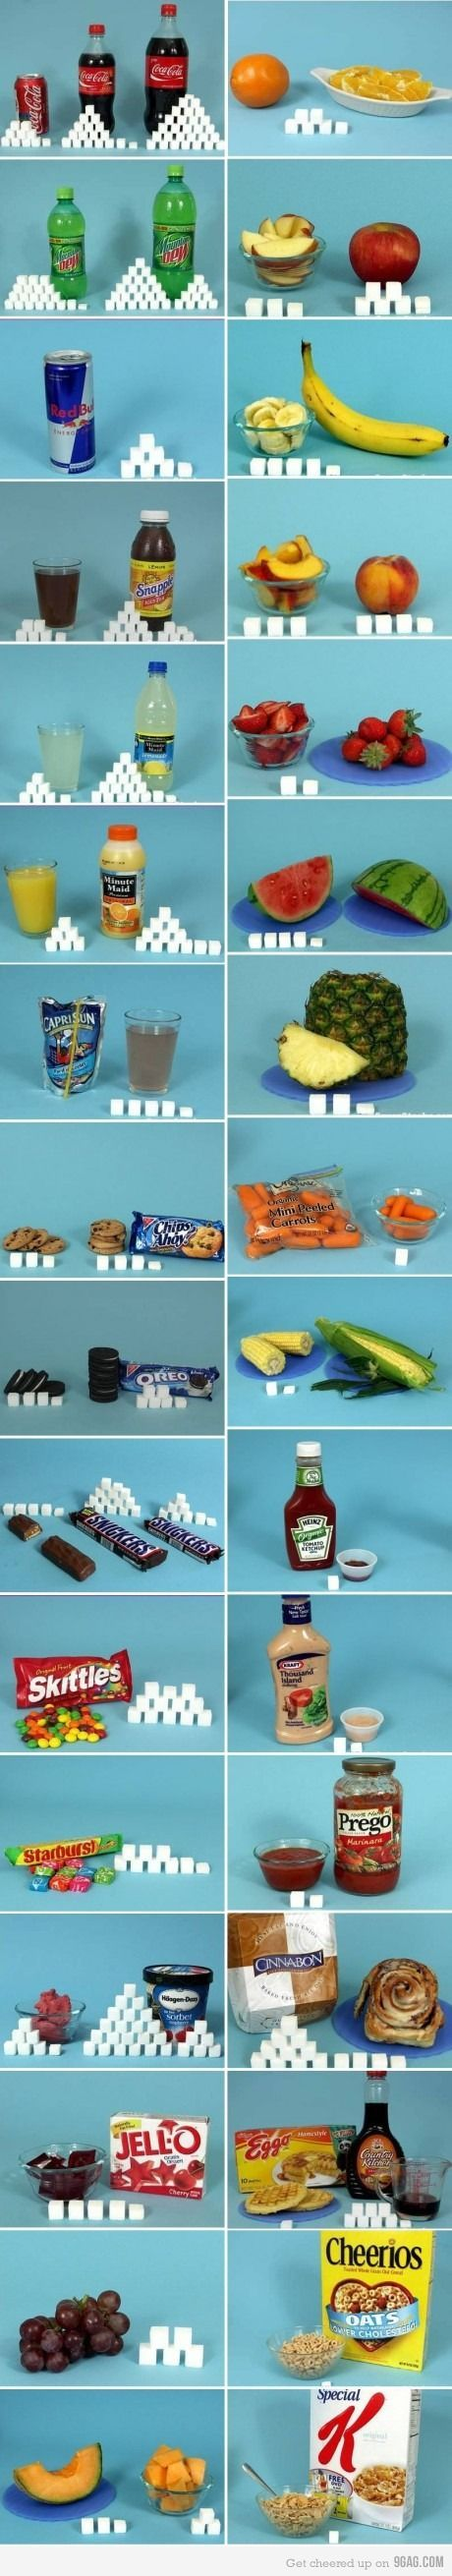 Interesting... makes me realize how much I'd rather eat natural sugars from plants/veggies/fruits.